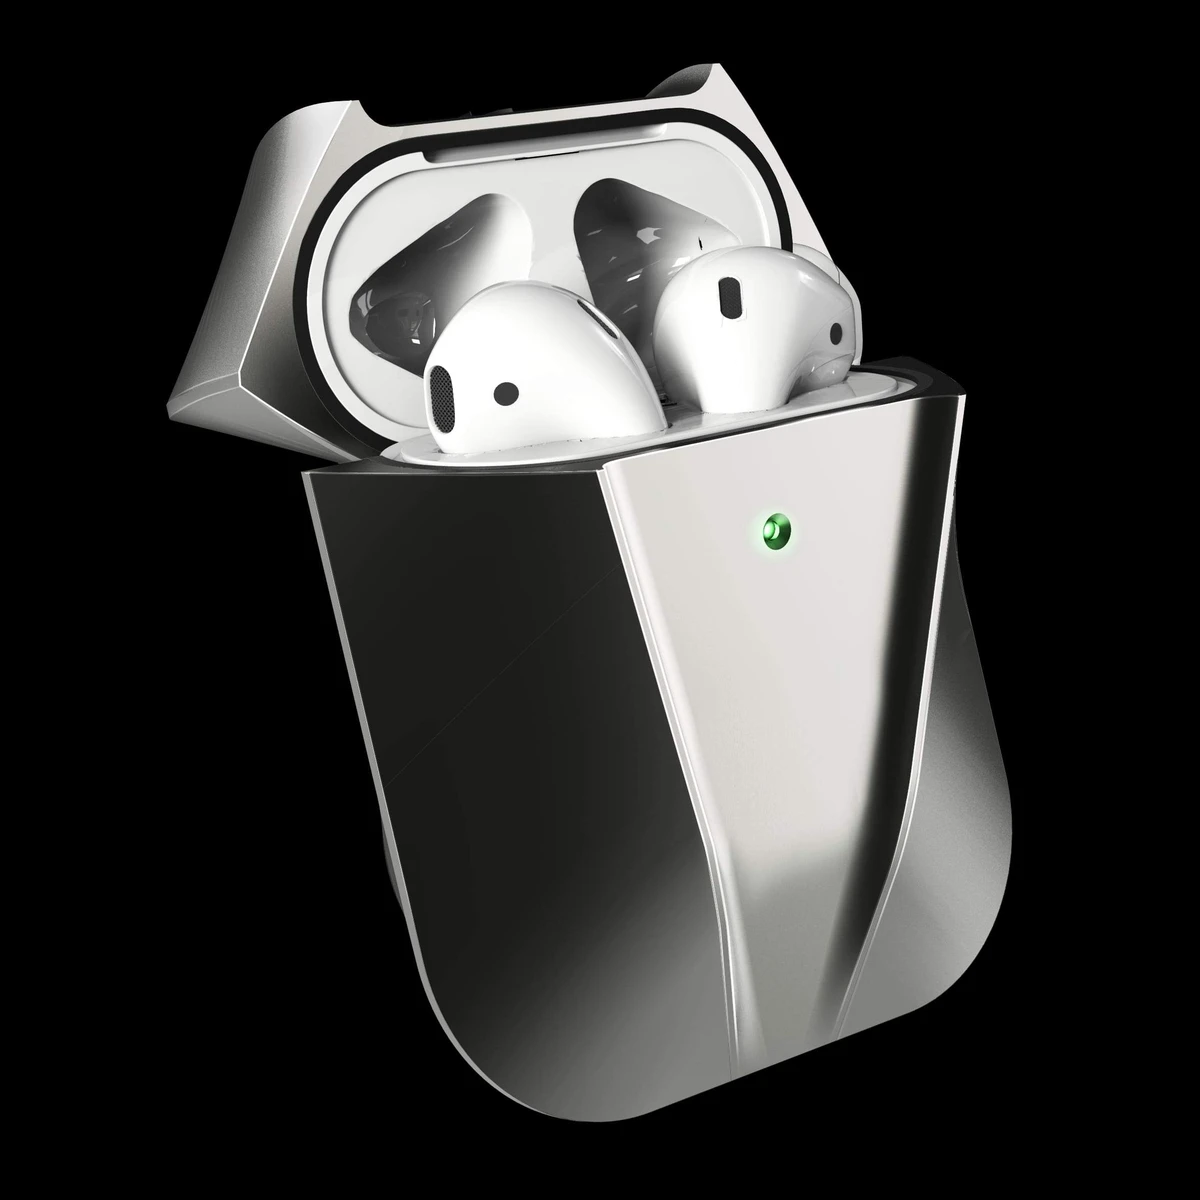 viper aluminium space gray AirPods case